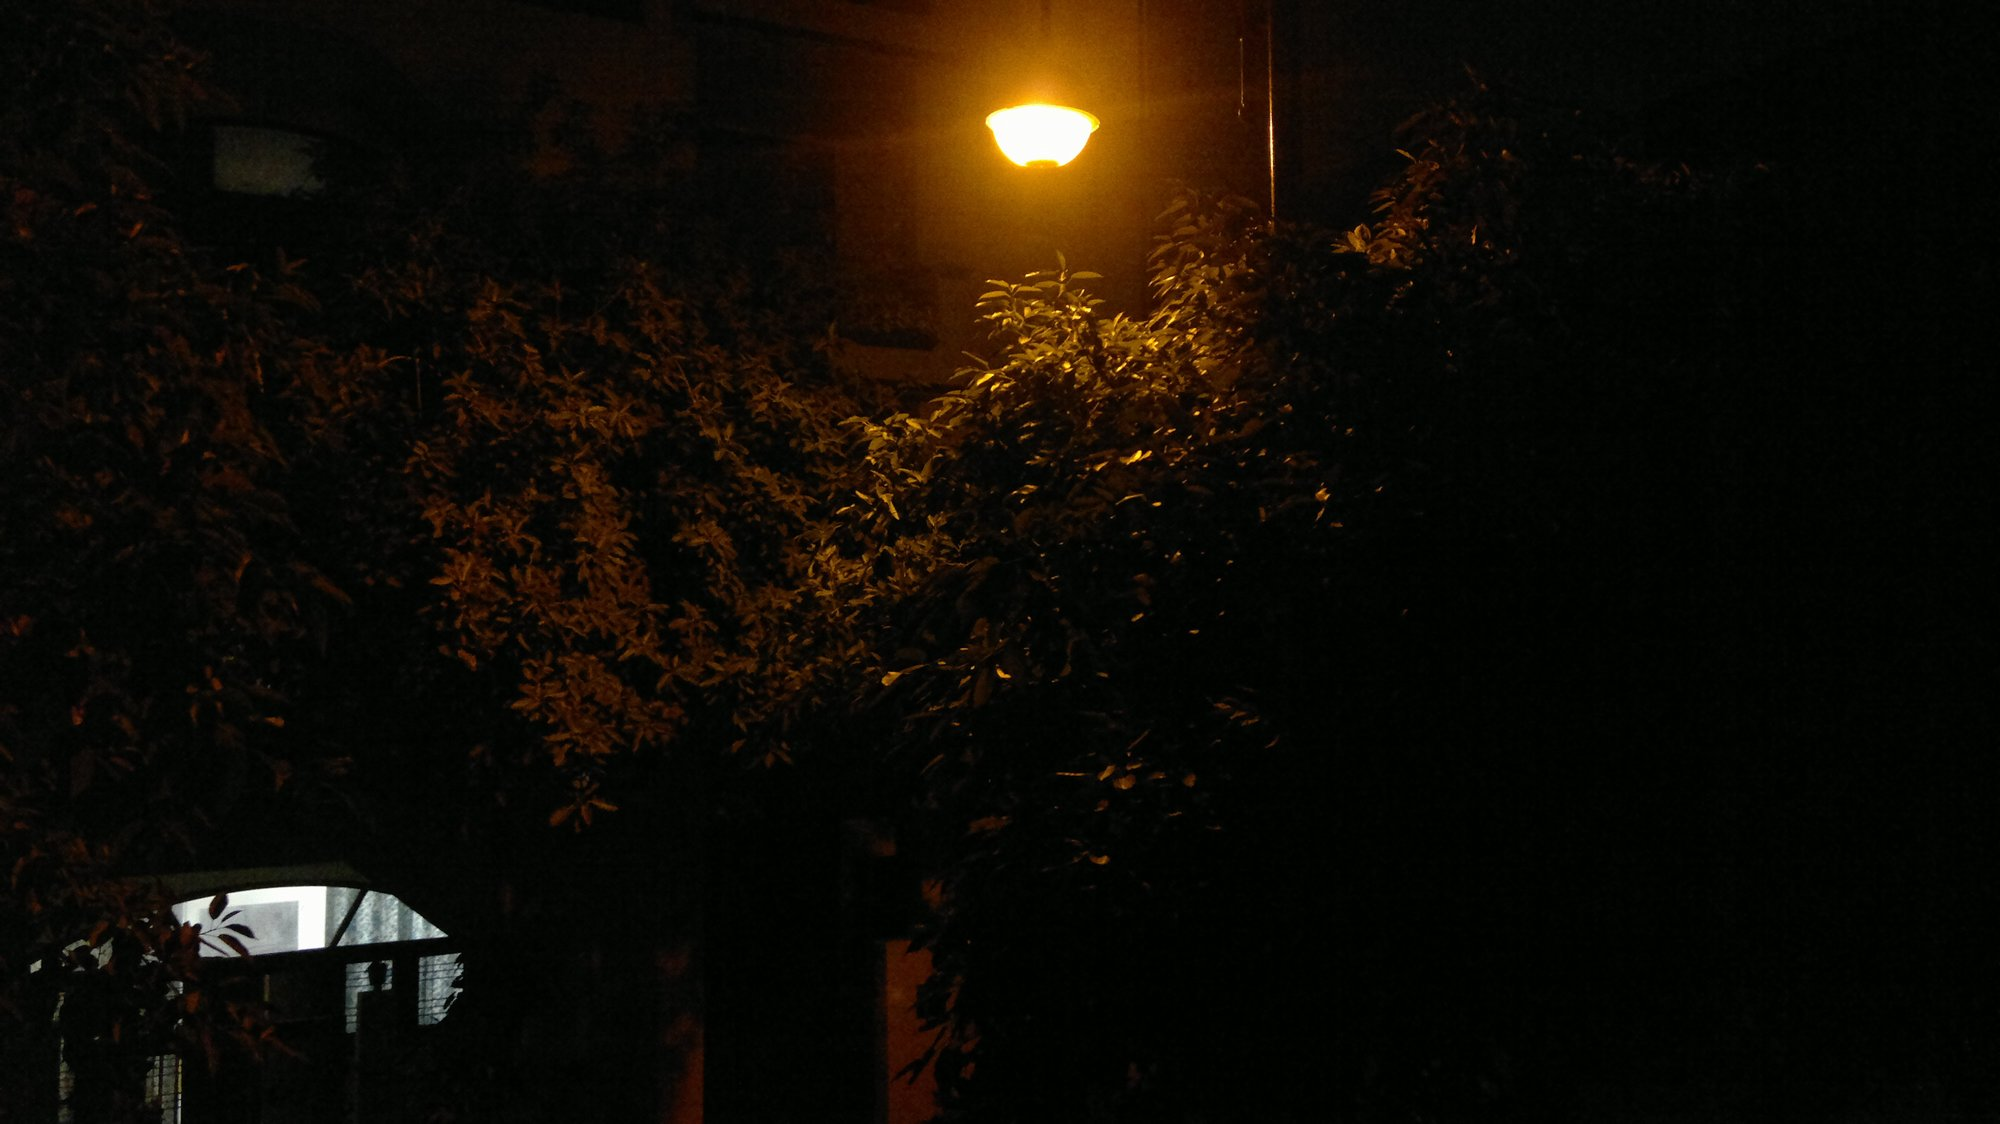 Nokia N8 outdoor without flash.jpg